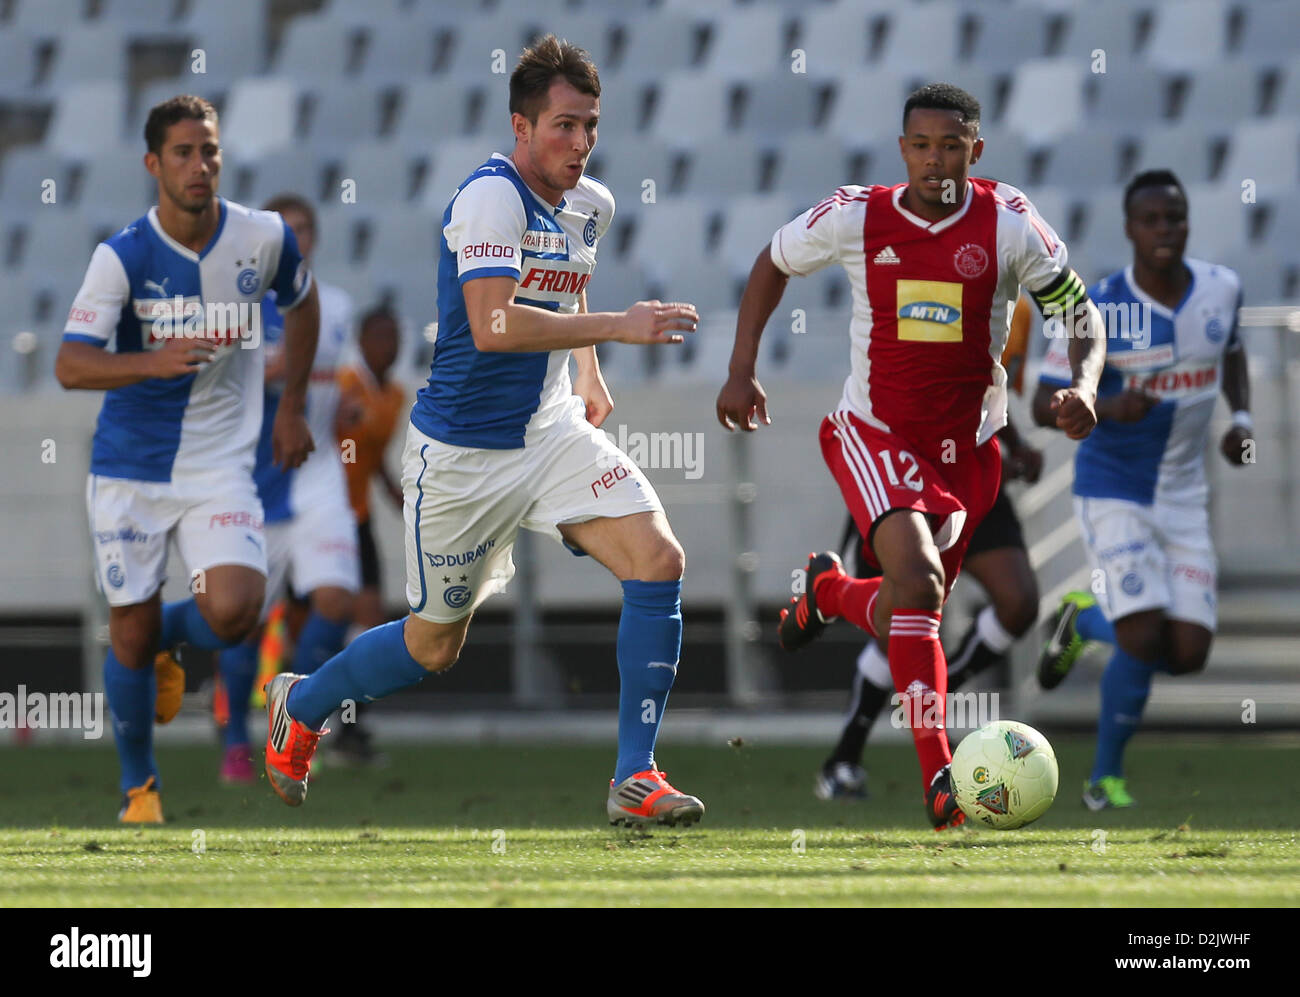 CAPE TOWN, South Africa - Saturday 26 January 2013, Izet Hajrovic of Grasshopper Club Zurich during the soccer/football - Stock Image